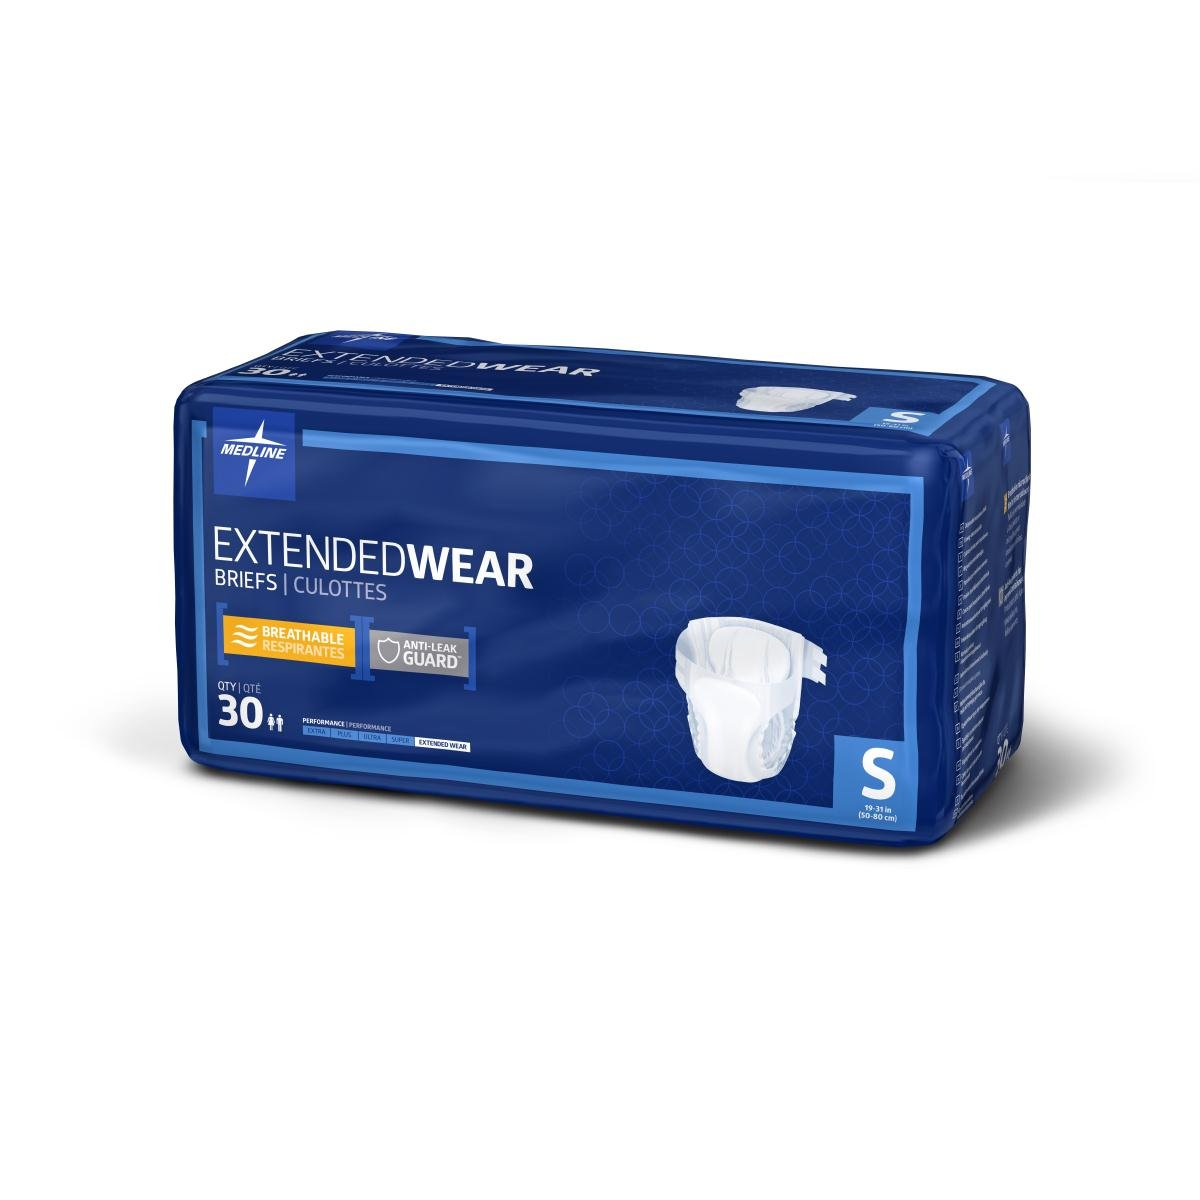 Medline MTB80200 High Performance Absorbency Adult Extended Wear and Overnight Briefs, Size Small (Pack of 120)